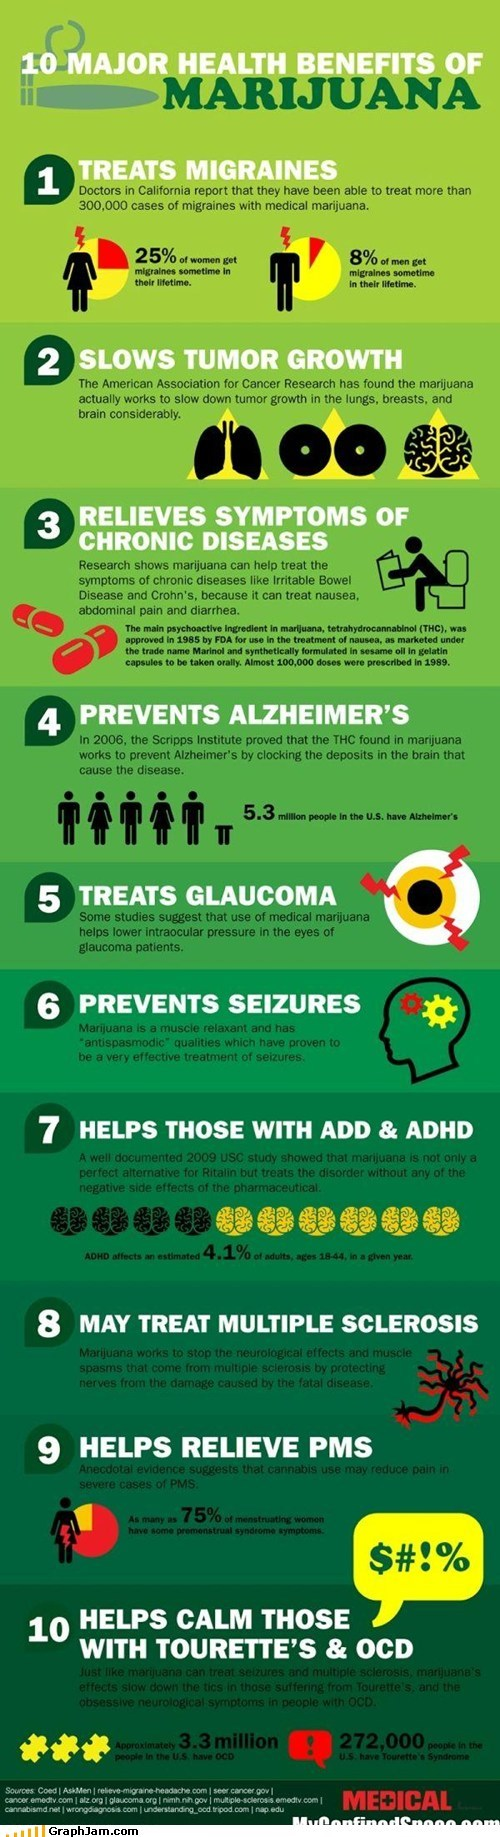 best of week drugs health infographic marijuana medical - 5769216768